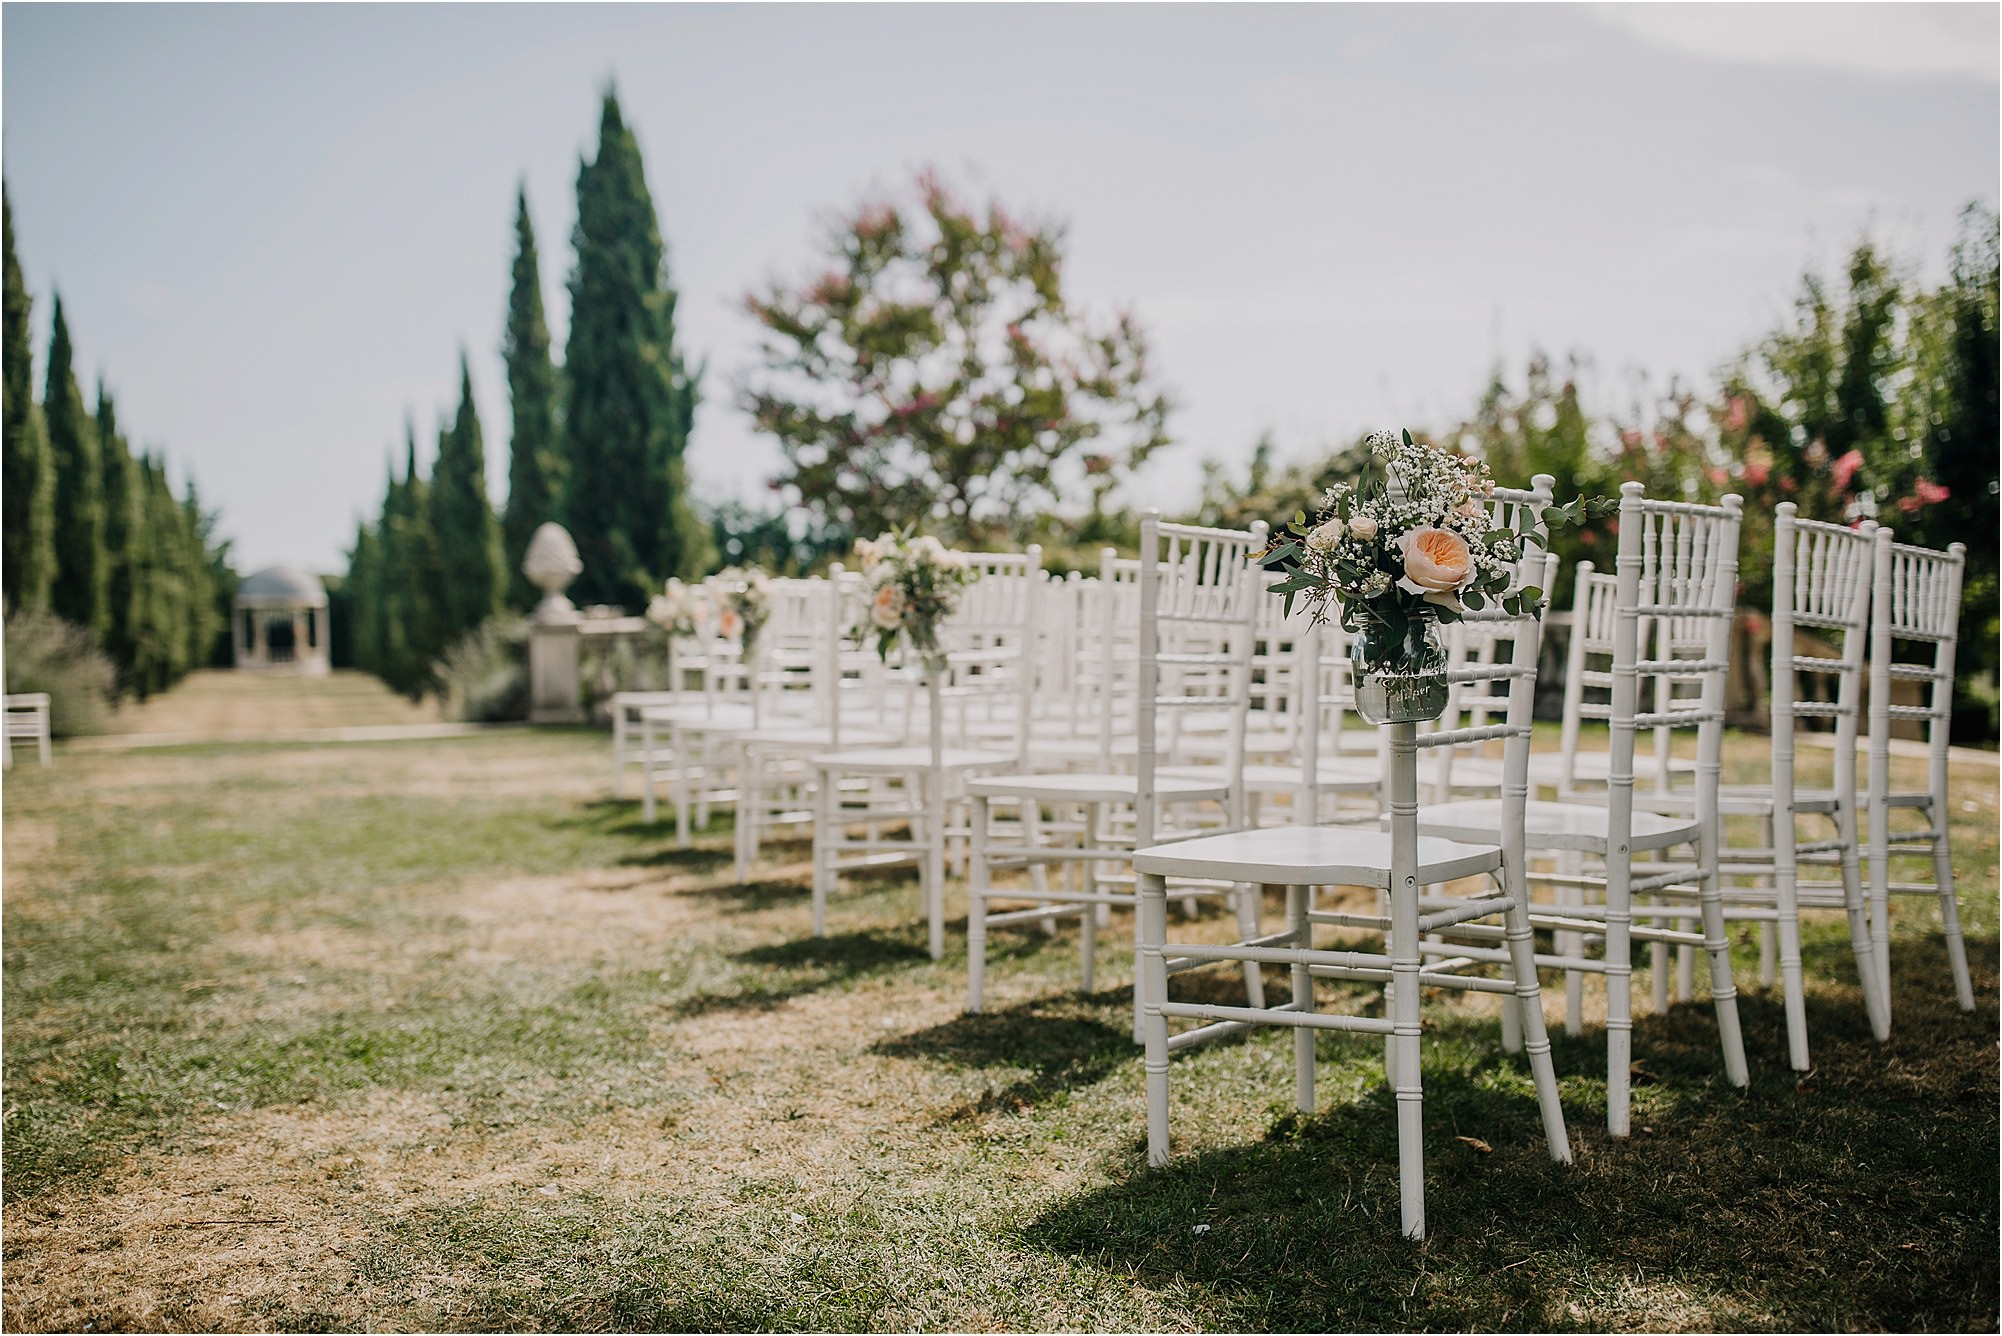 flowers on the chairs at an outdoor ceremony at chateau la durantie